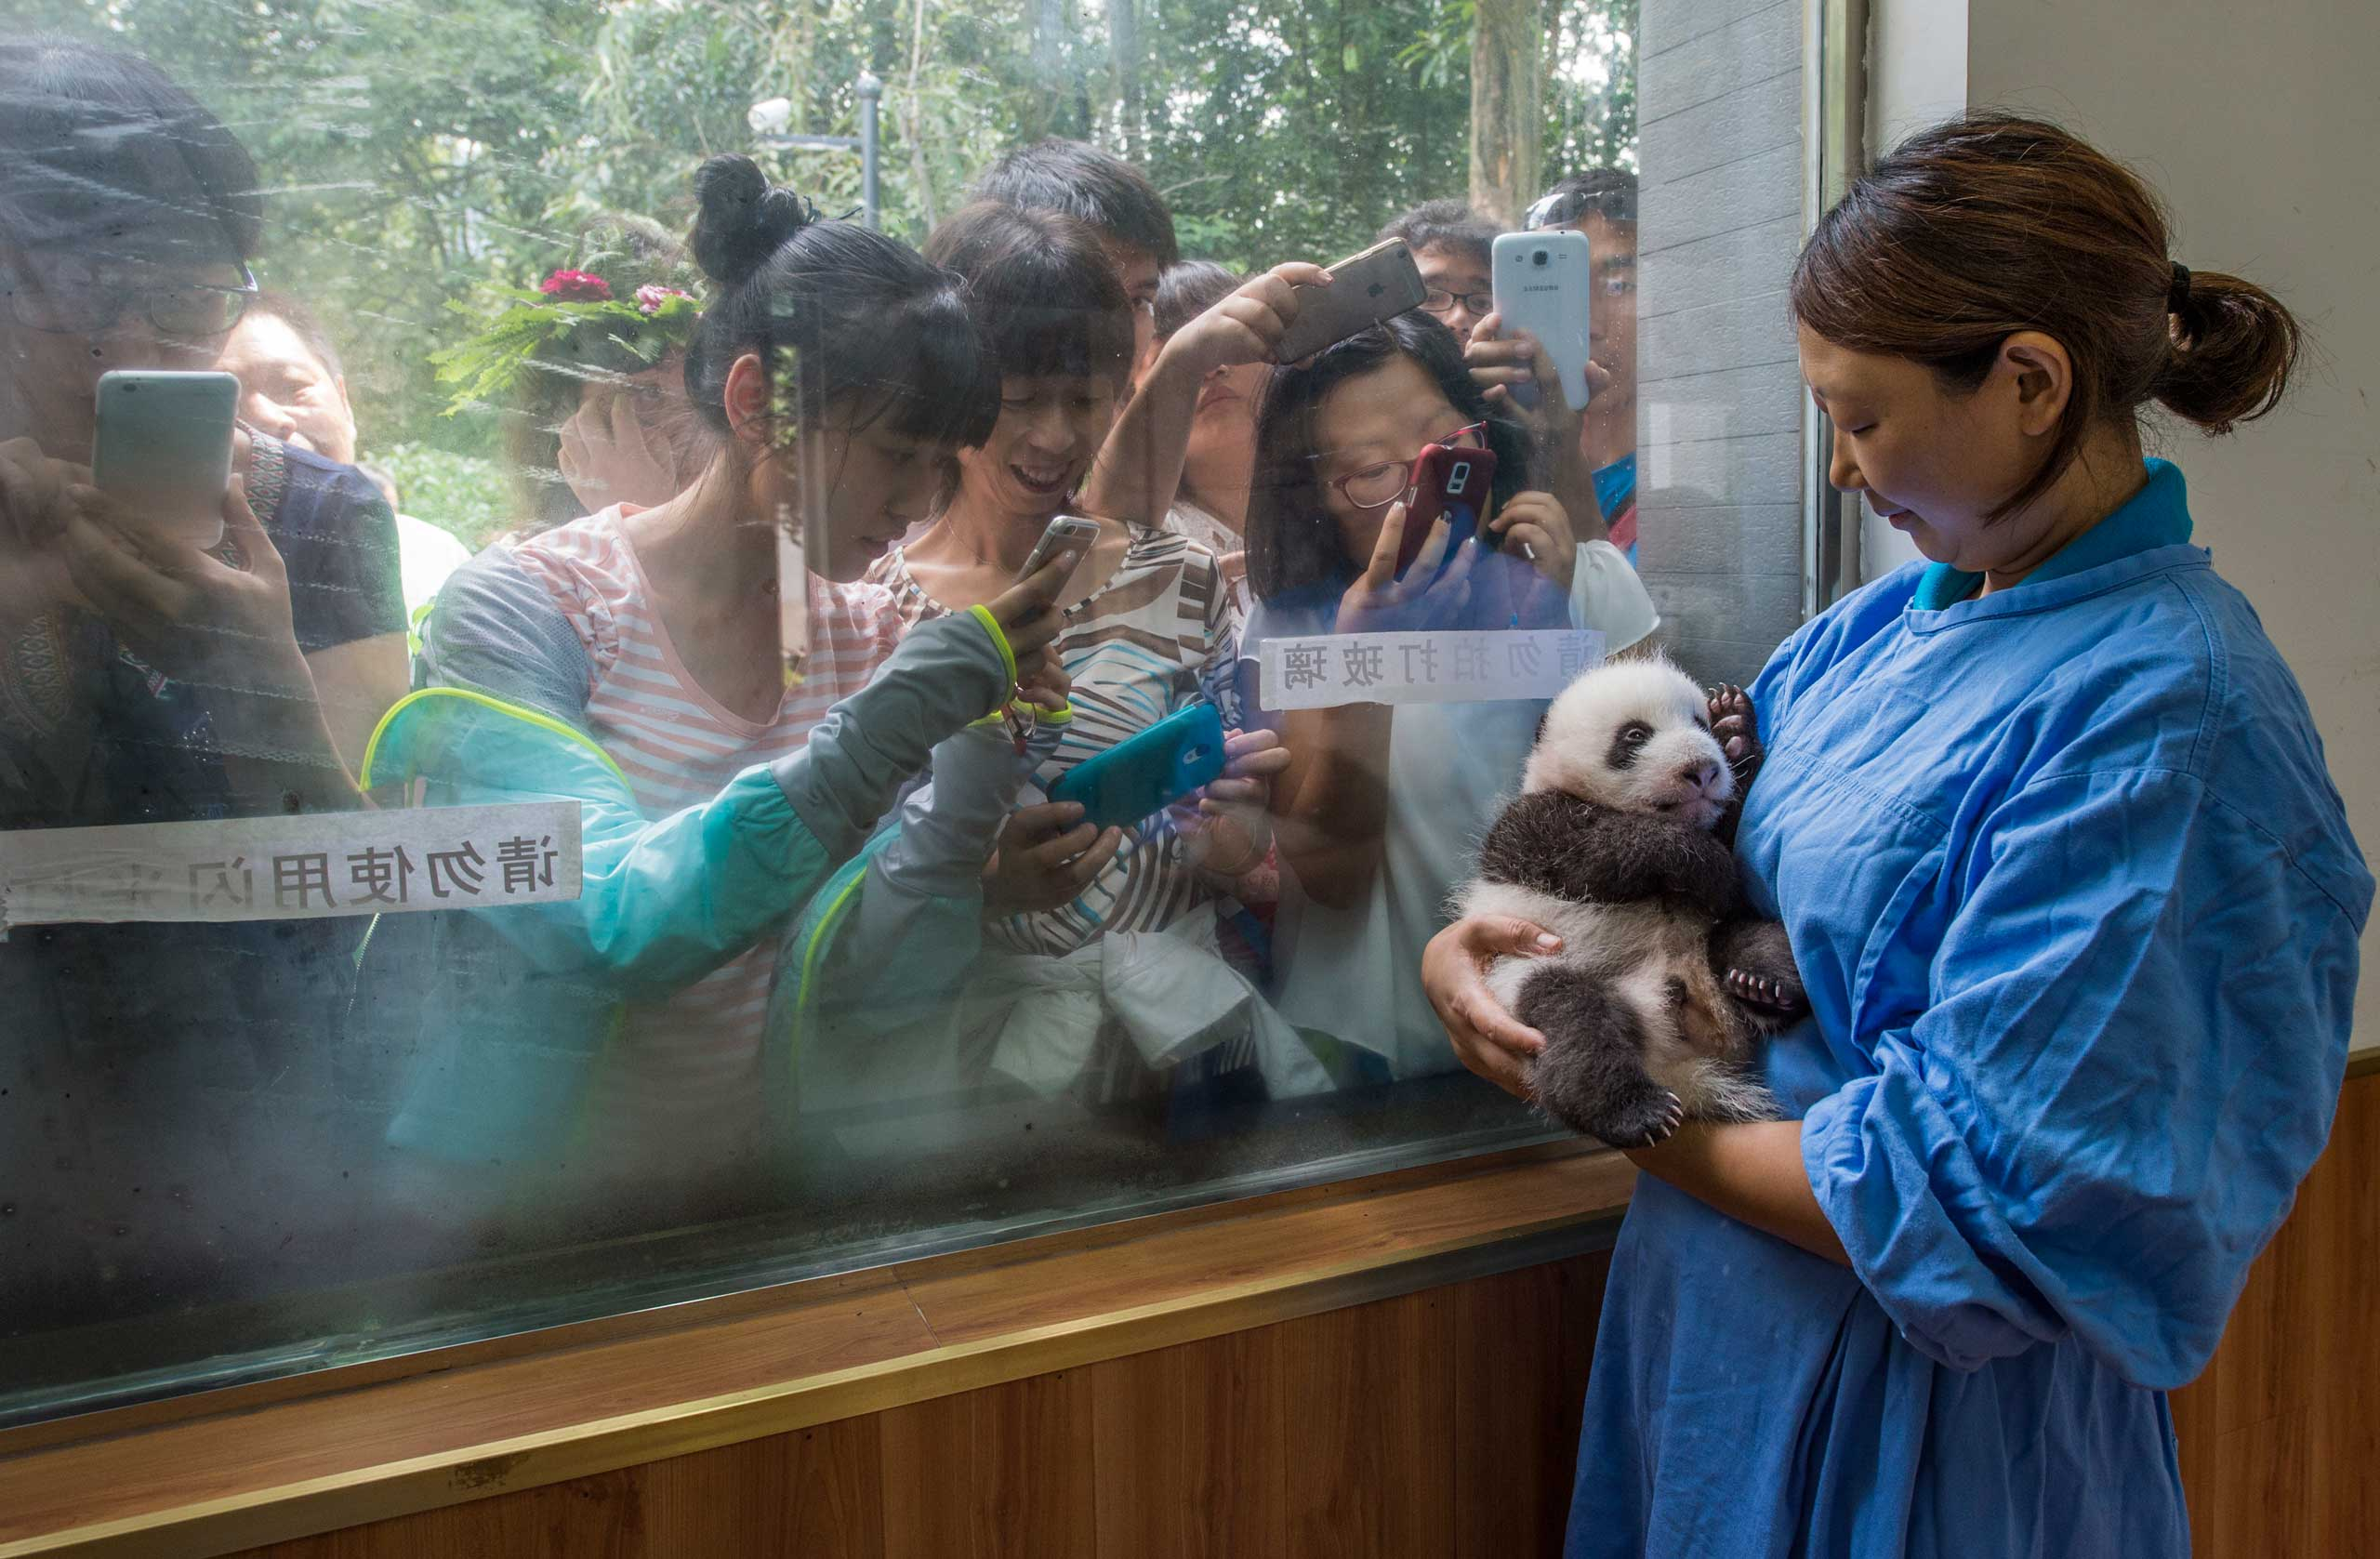 Caretaker Li Feng cradles her precious charge by the window of Bifengxia's panda nursery, the most popular stop for visitors touring the facilities. More than 400,000 people visit each year to glimpse and snap photos of China's most beloved baby animals.